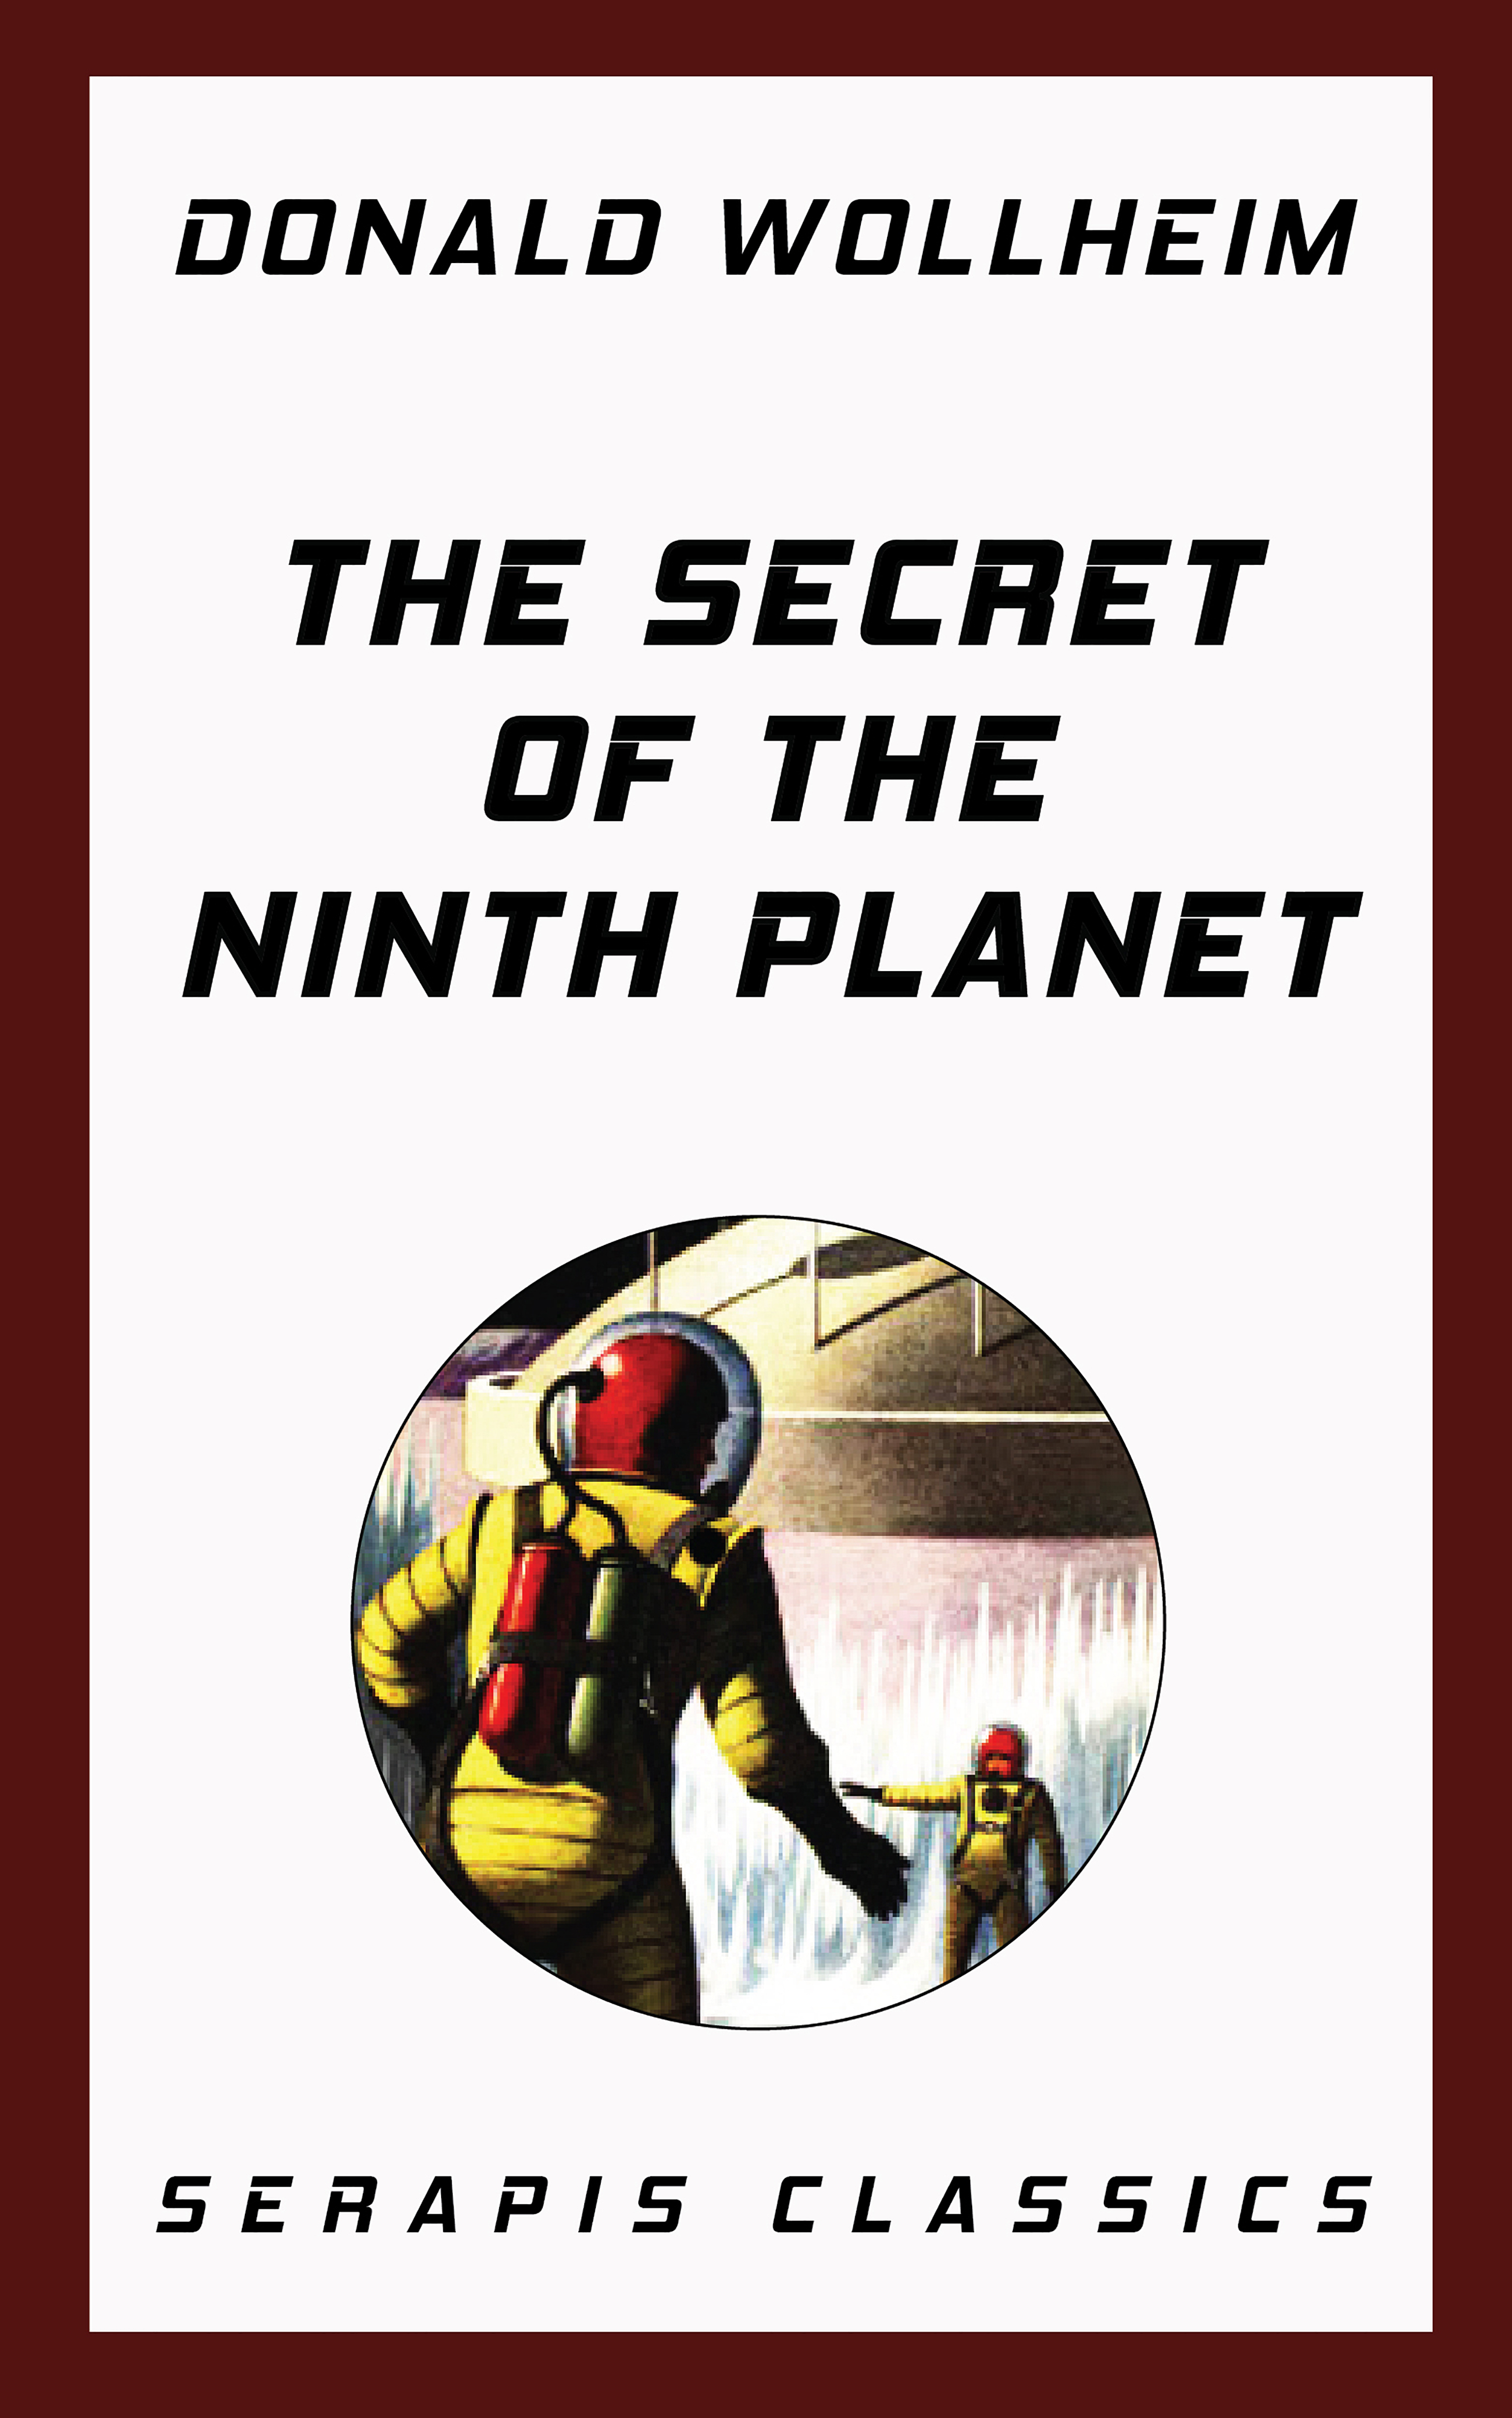 Donald Wollheim The Secret of the Ninth Planet 9th the ninth джинсовые брюки